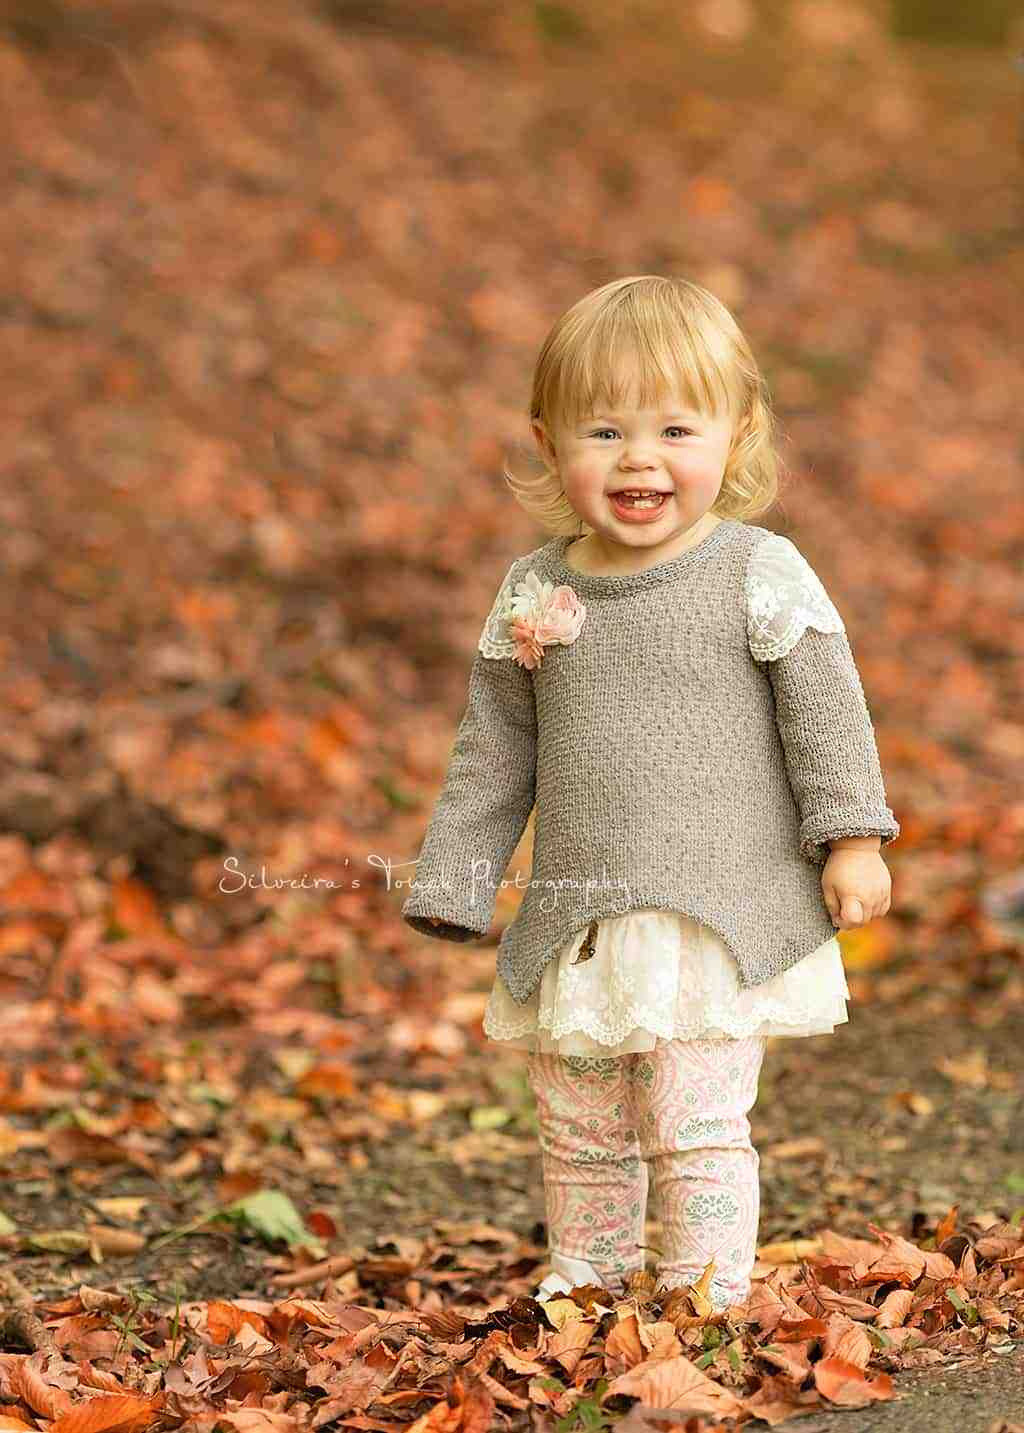 smiling baby girl photo outdoor in the fall